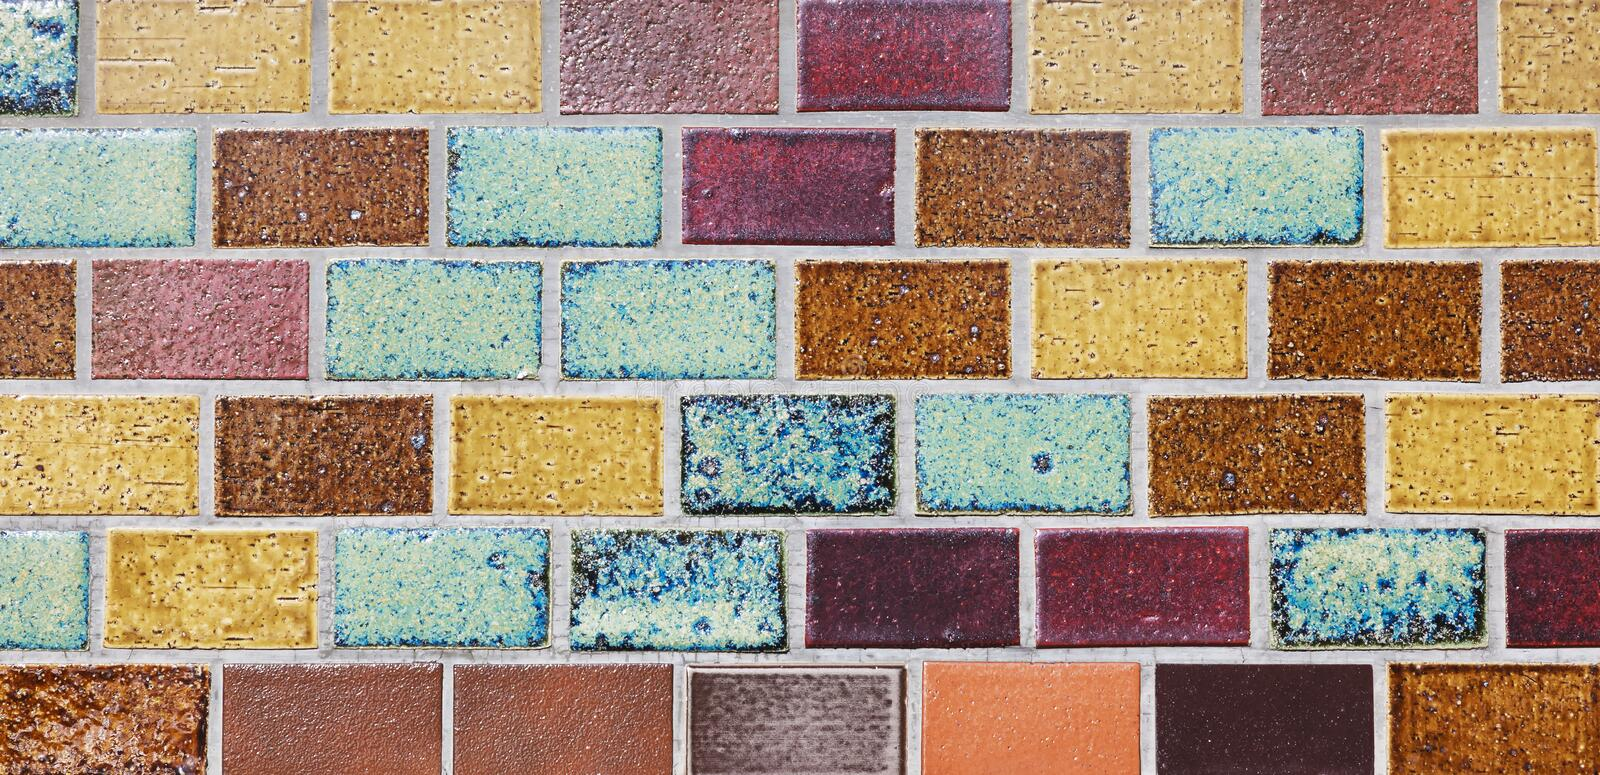 Ceramic tiles colorful wall background stock images